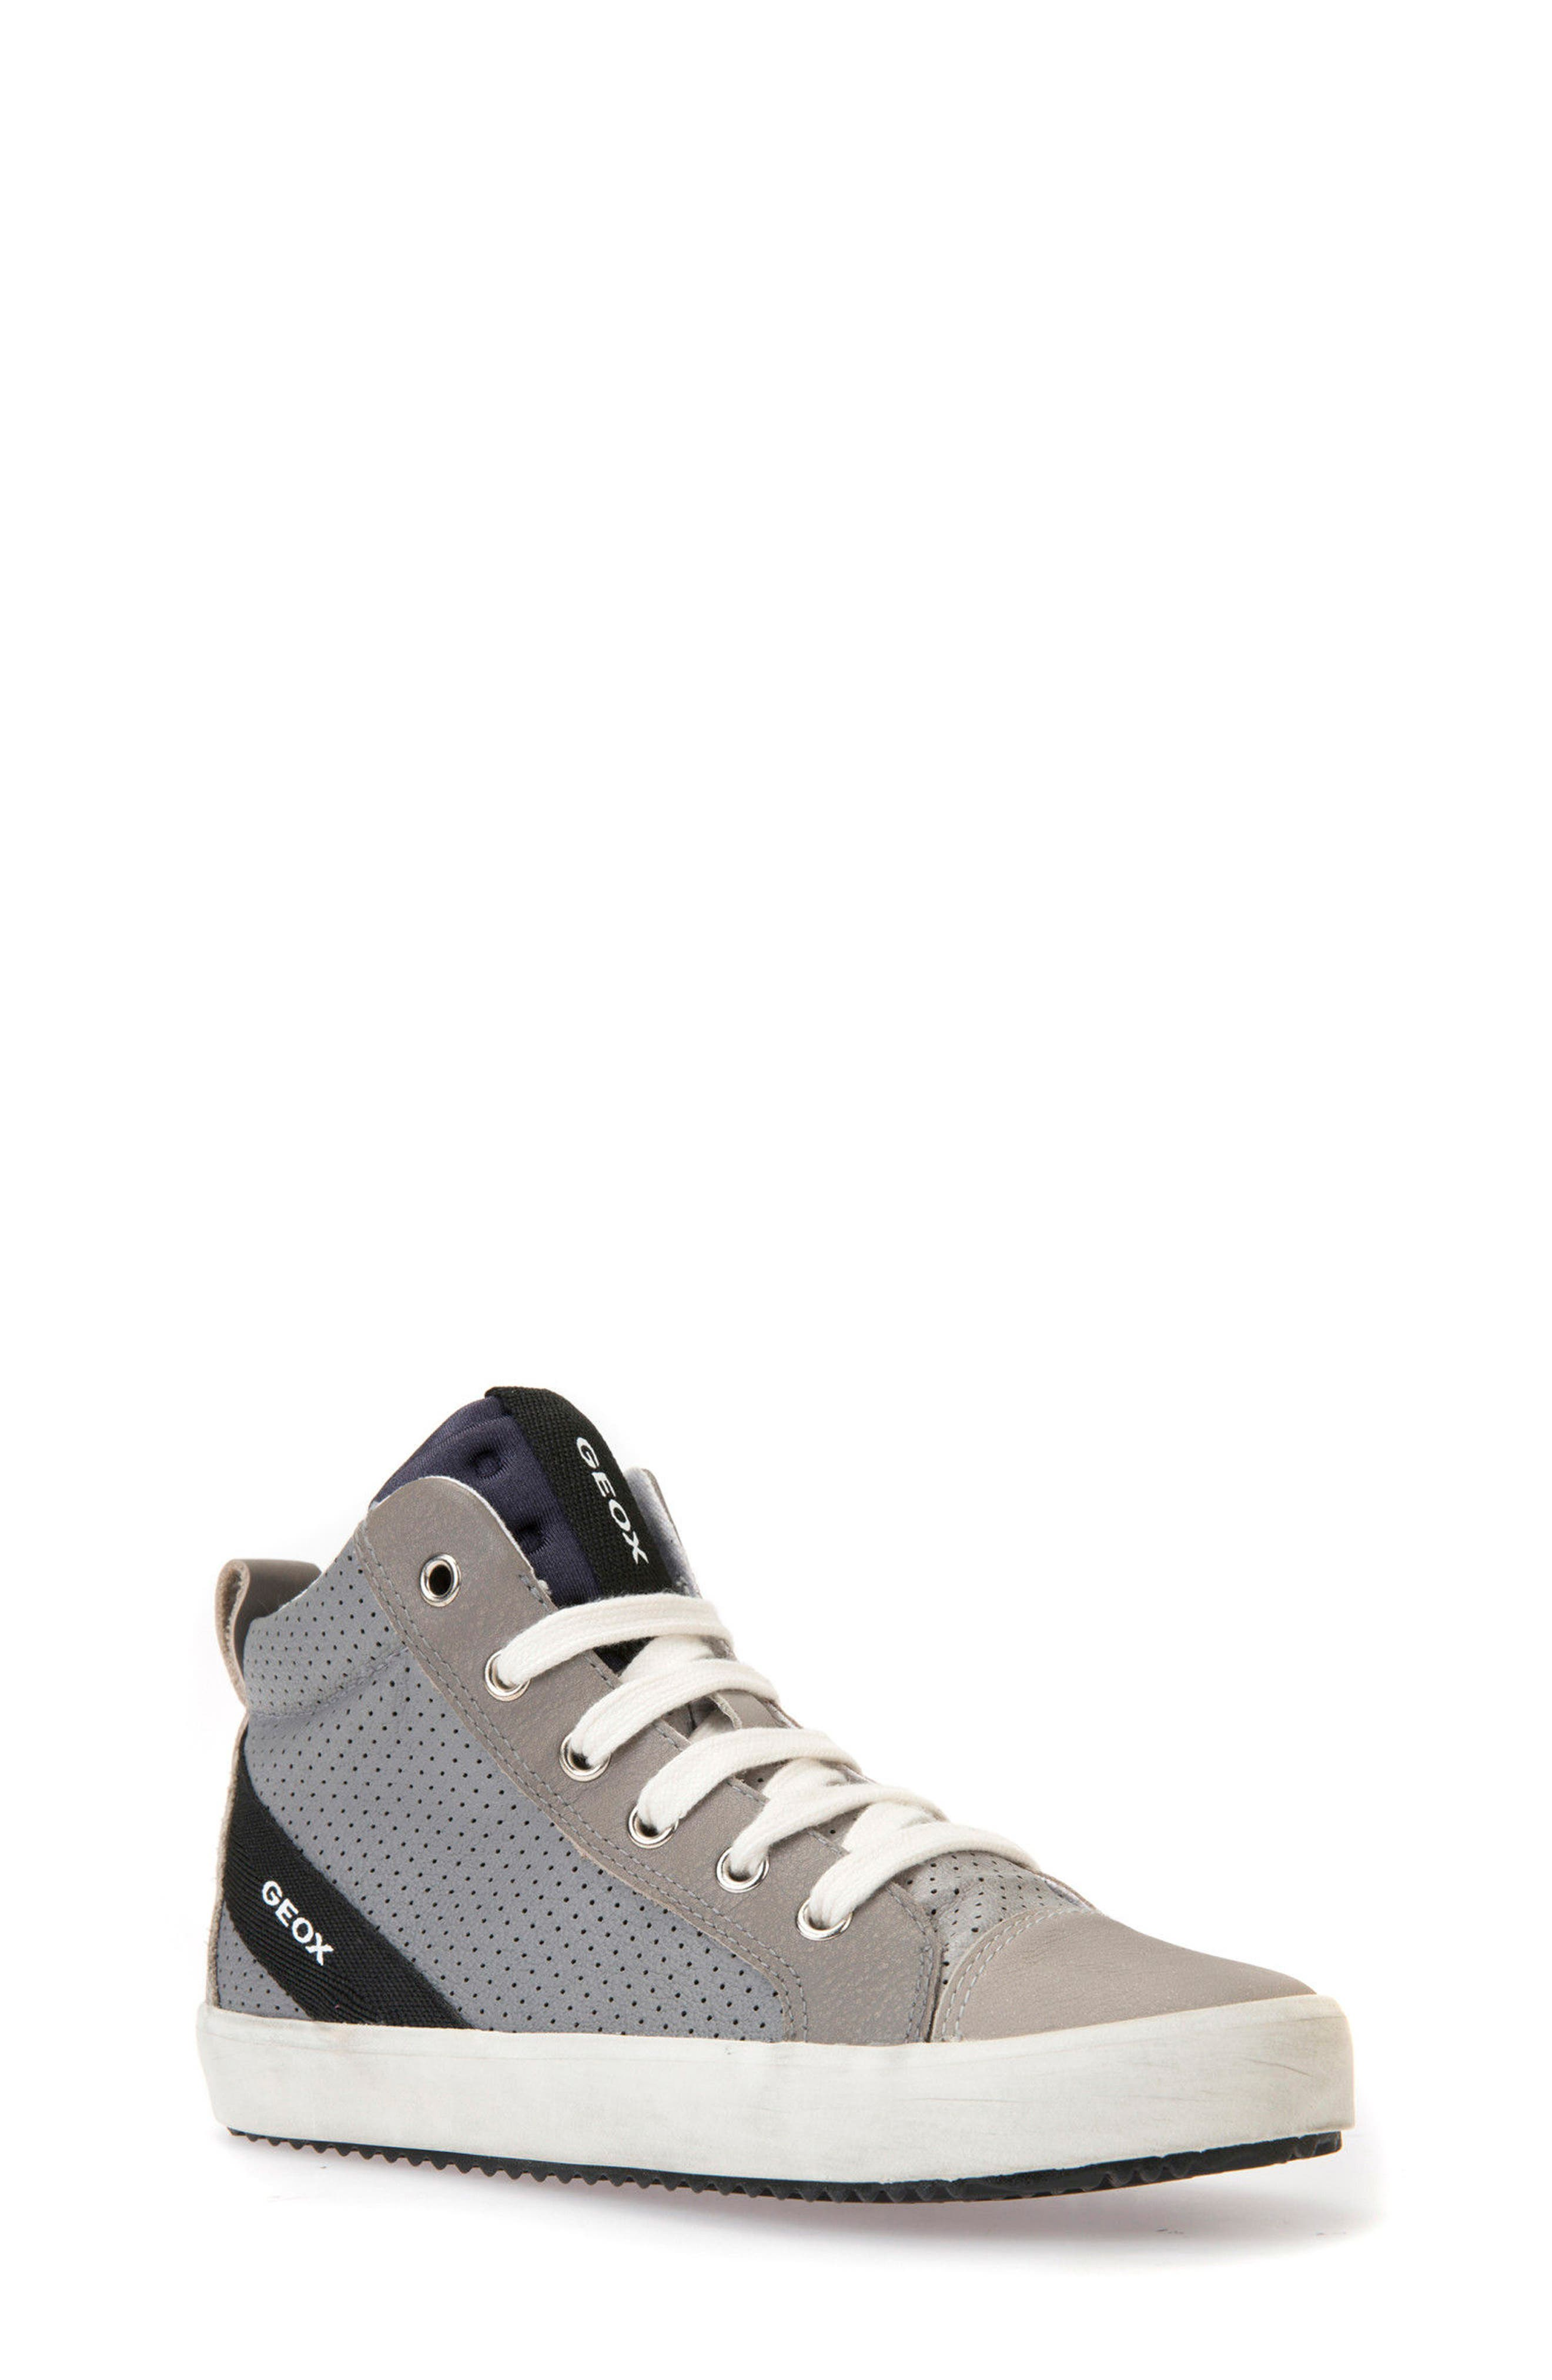 Alonisso Perforated Mid Top Sneaker,                         Main,                         color, GREY/ LIGHT GREY